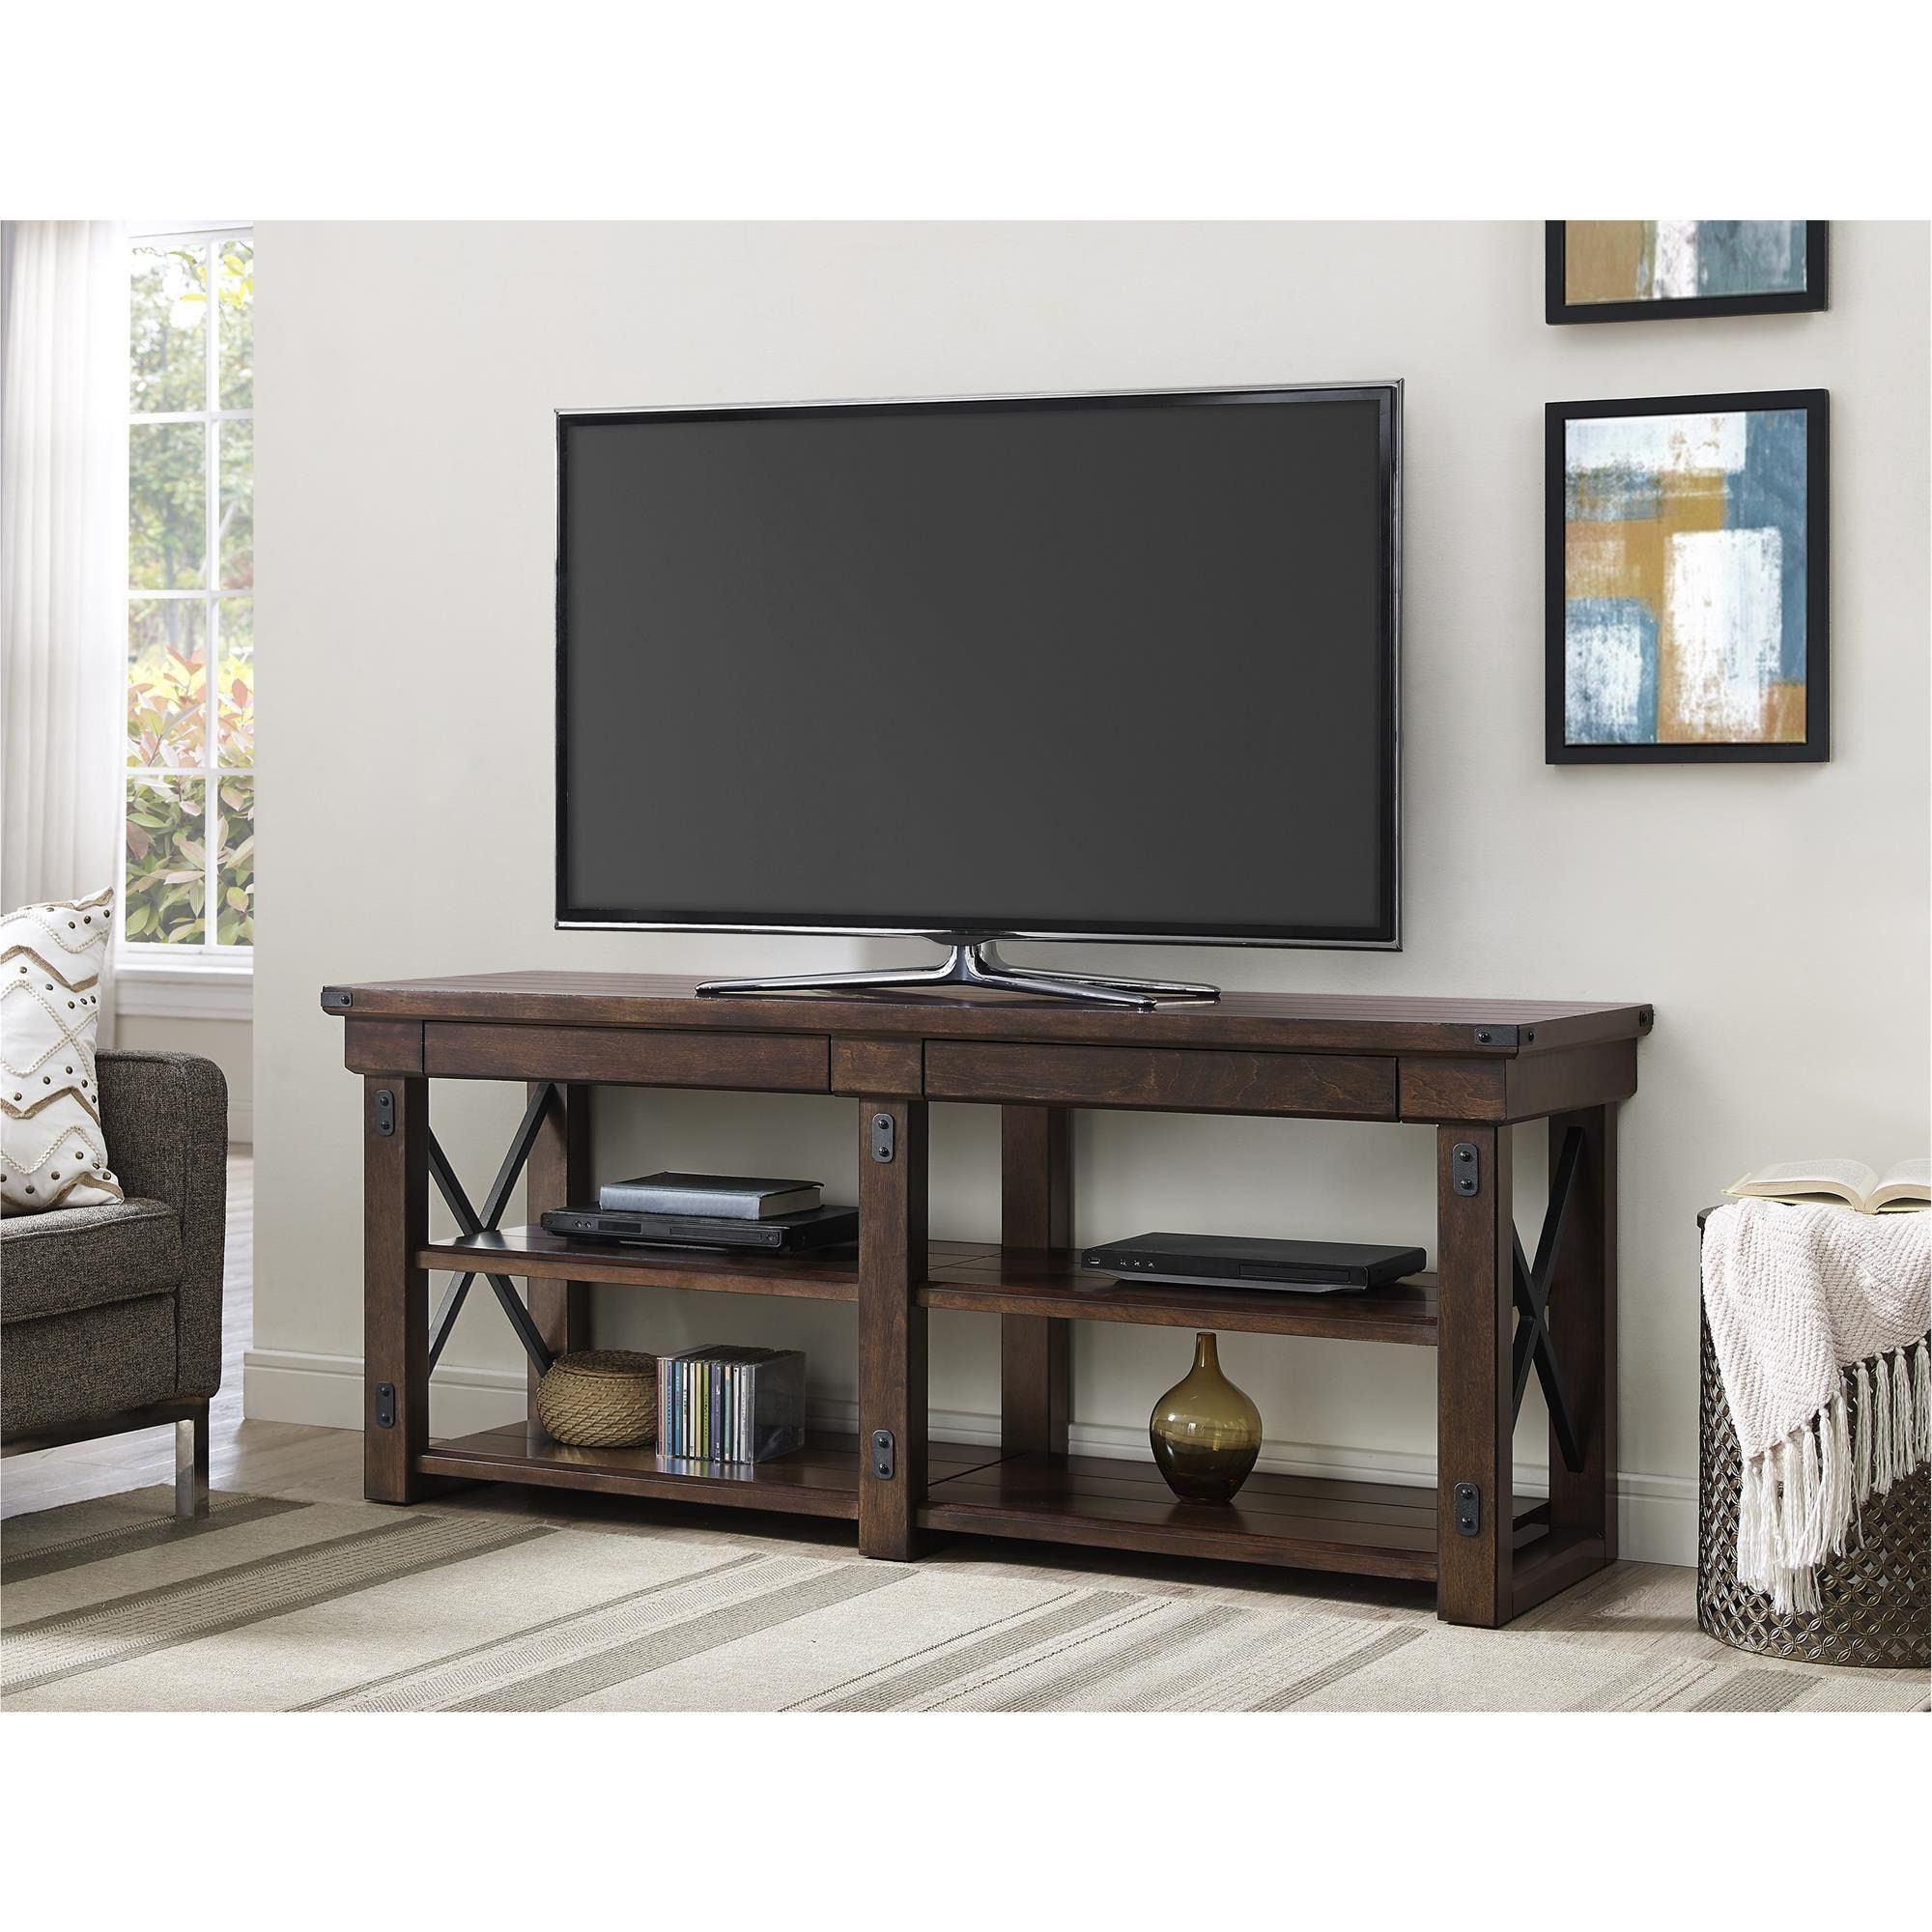 Ameriwood Home Wildwood Mahogany Veneer 65 Inch Tv Stand (65 Inch Tv Within Kenzie 72 Inch Open Display Tv Stands (View 11 of 20)